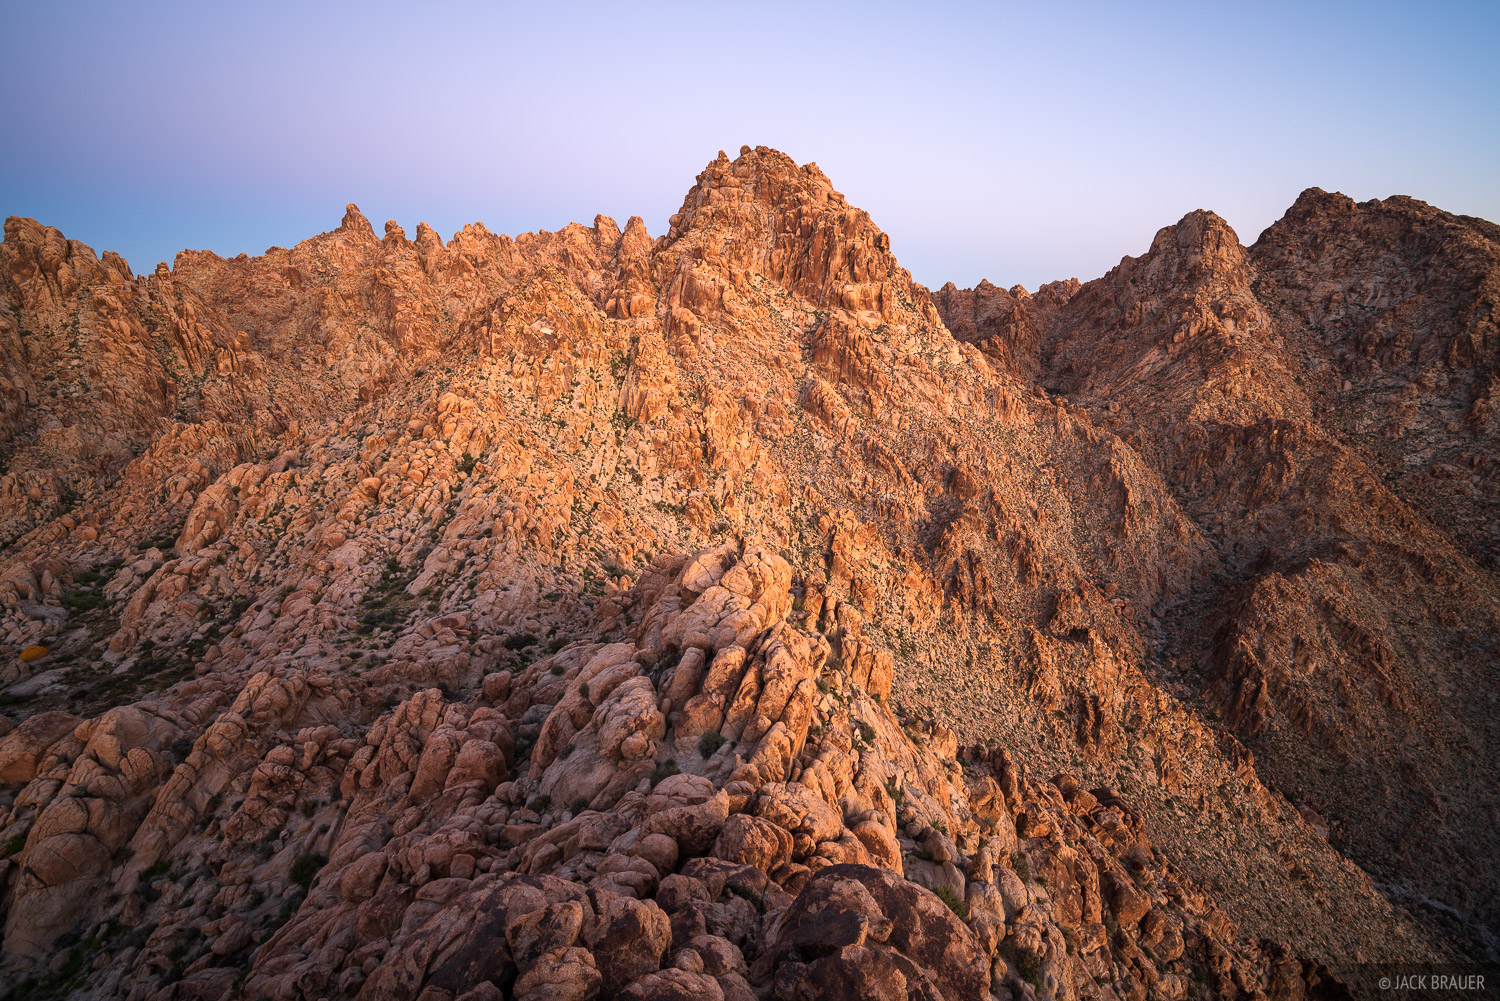 Dawn light in the Coxcomb Mountains.